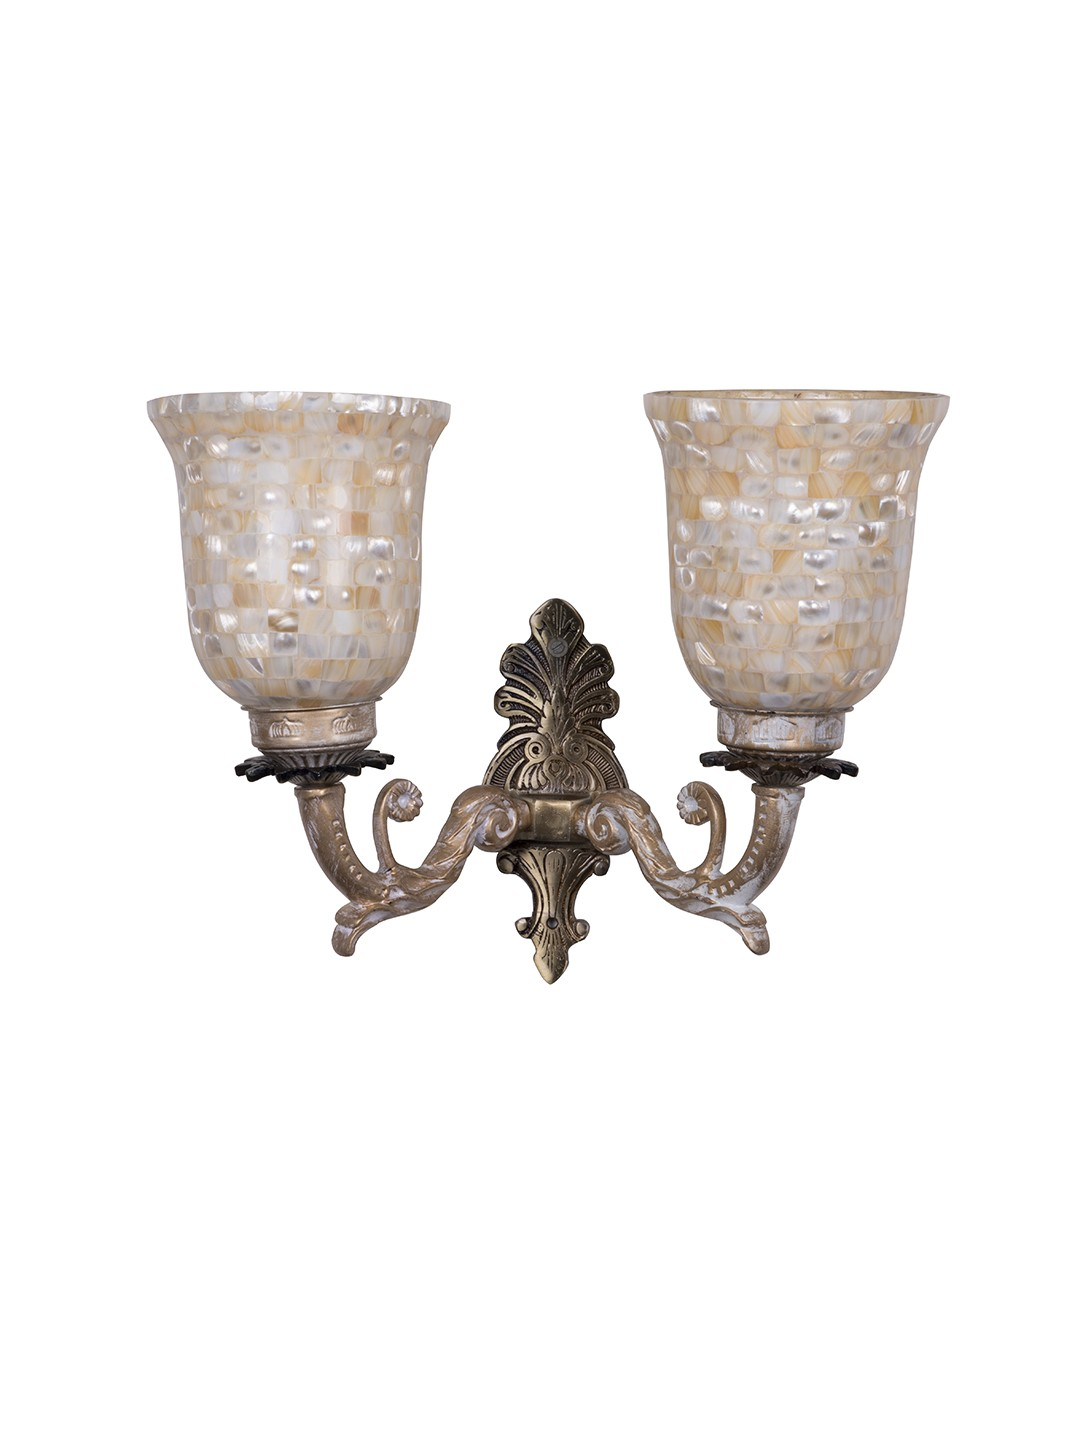 Golden White Double Wall Sconce with Mother of Pearl Glass Shades